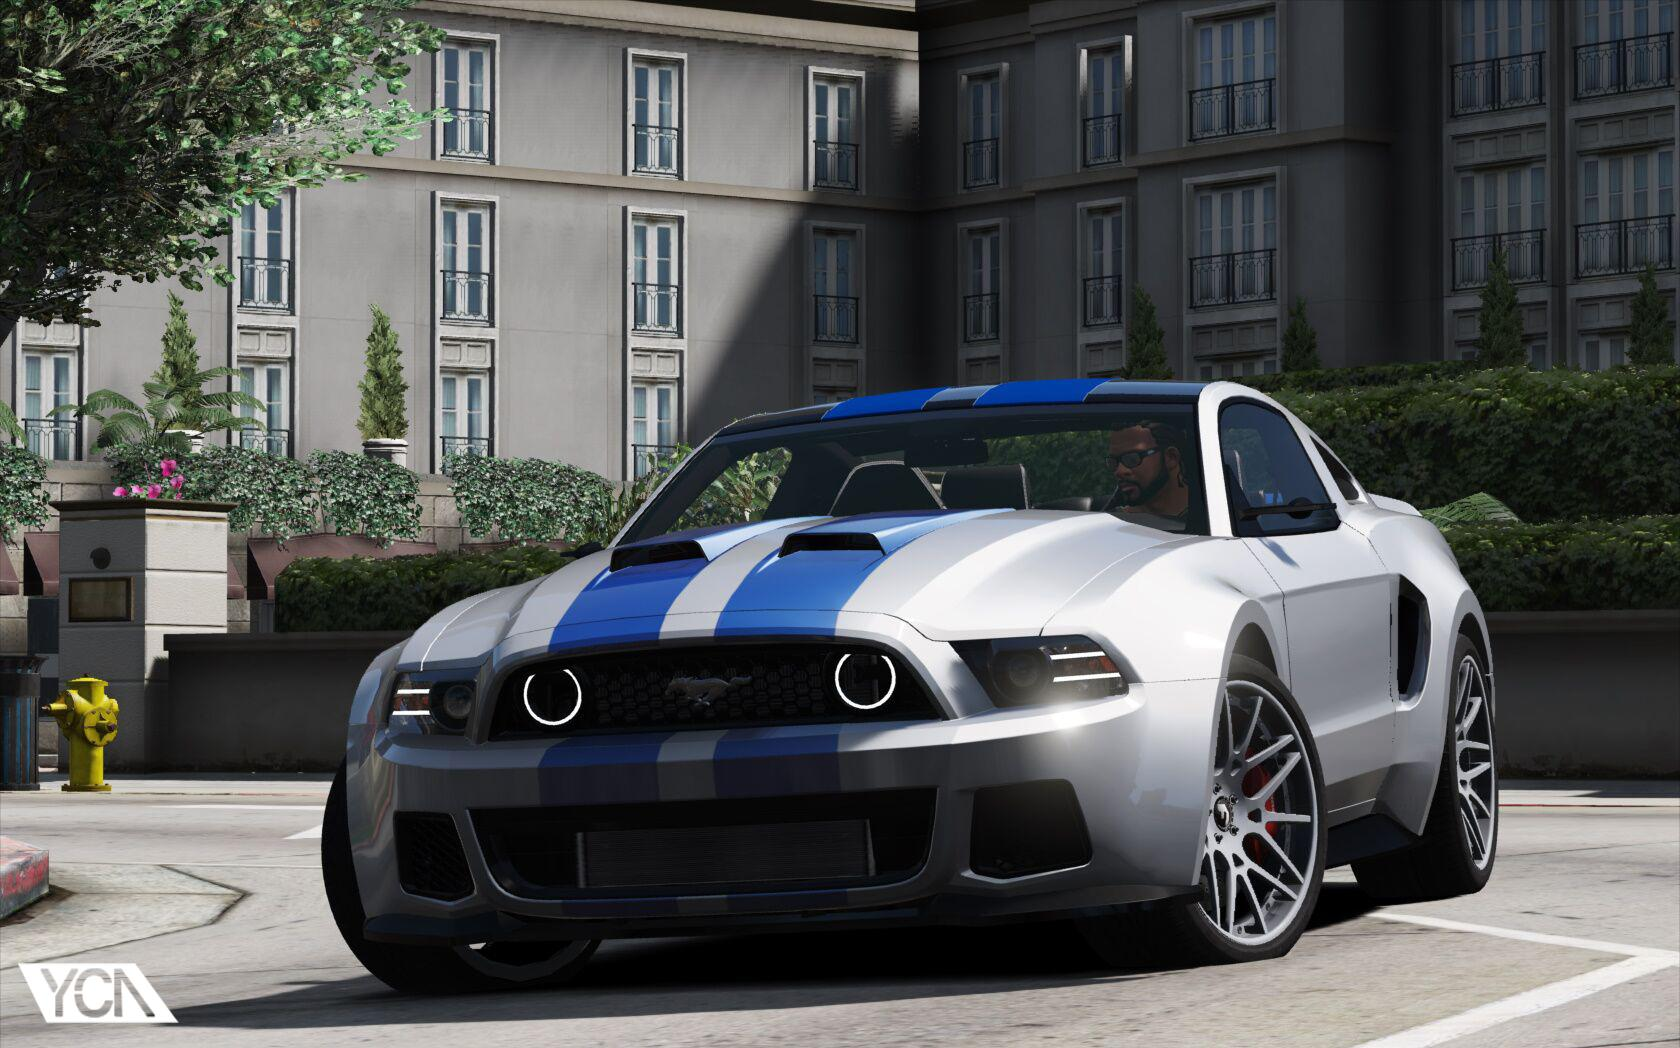 Ford mustang gt nfs gt500 2013 add on gta5 - Mustang modification ...